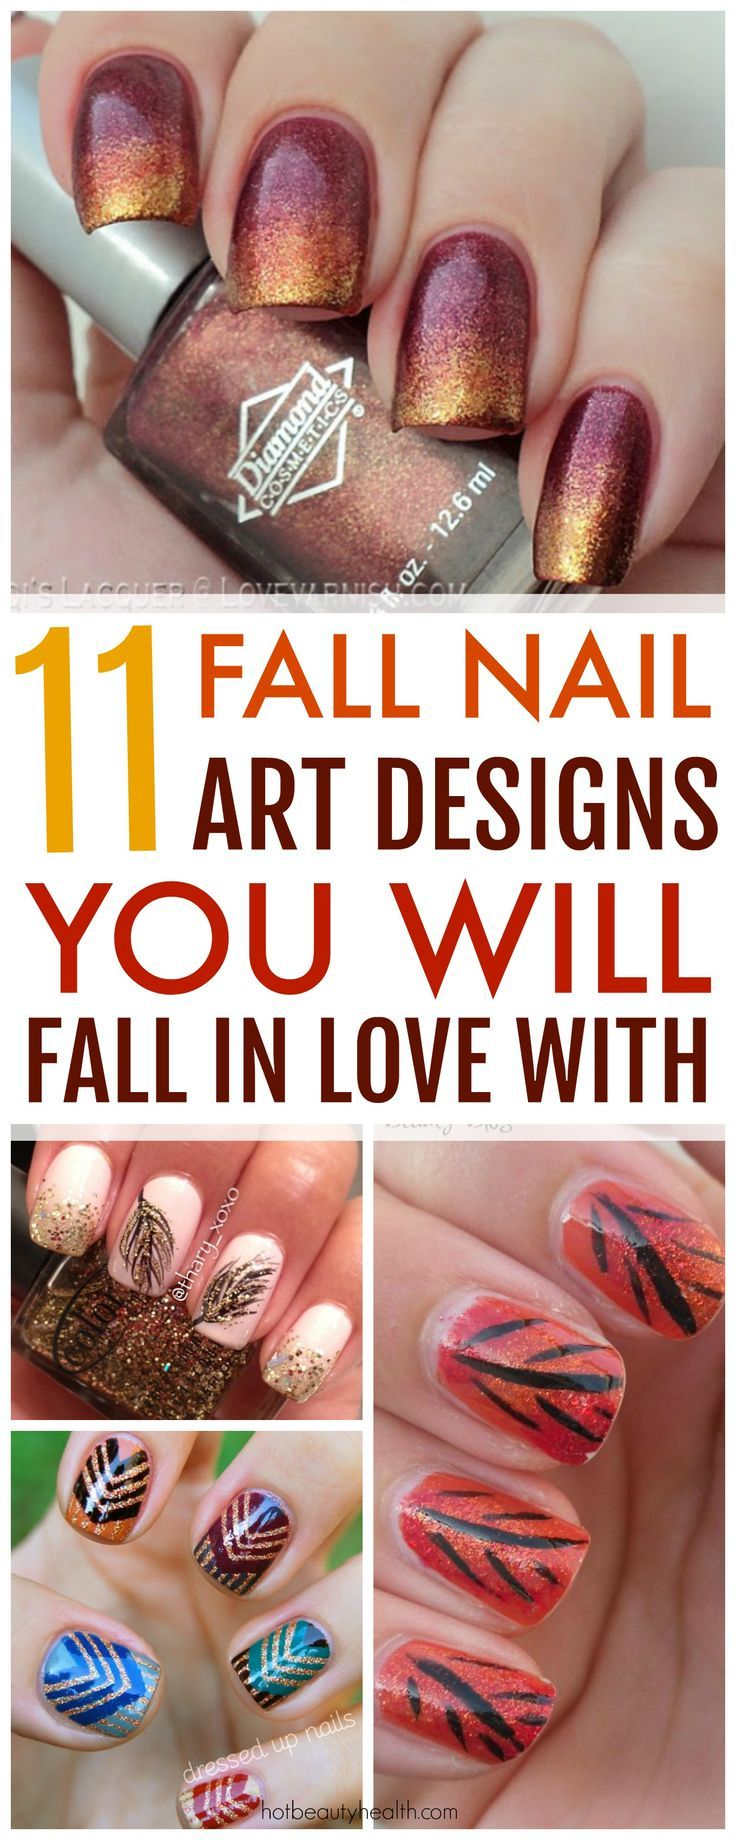 11 Fall Nail Art Designs You Need to Try Now | Hot nails, Design ...